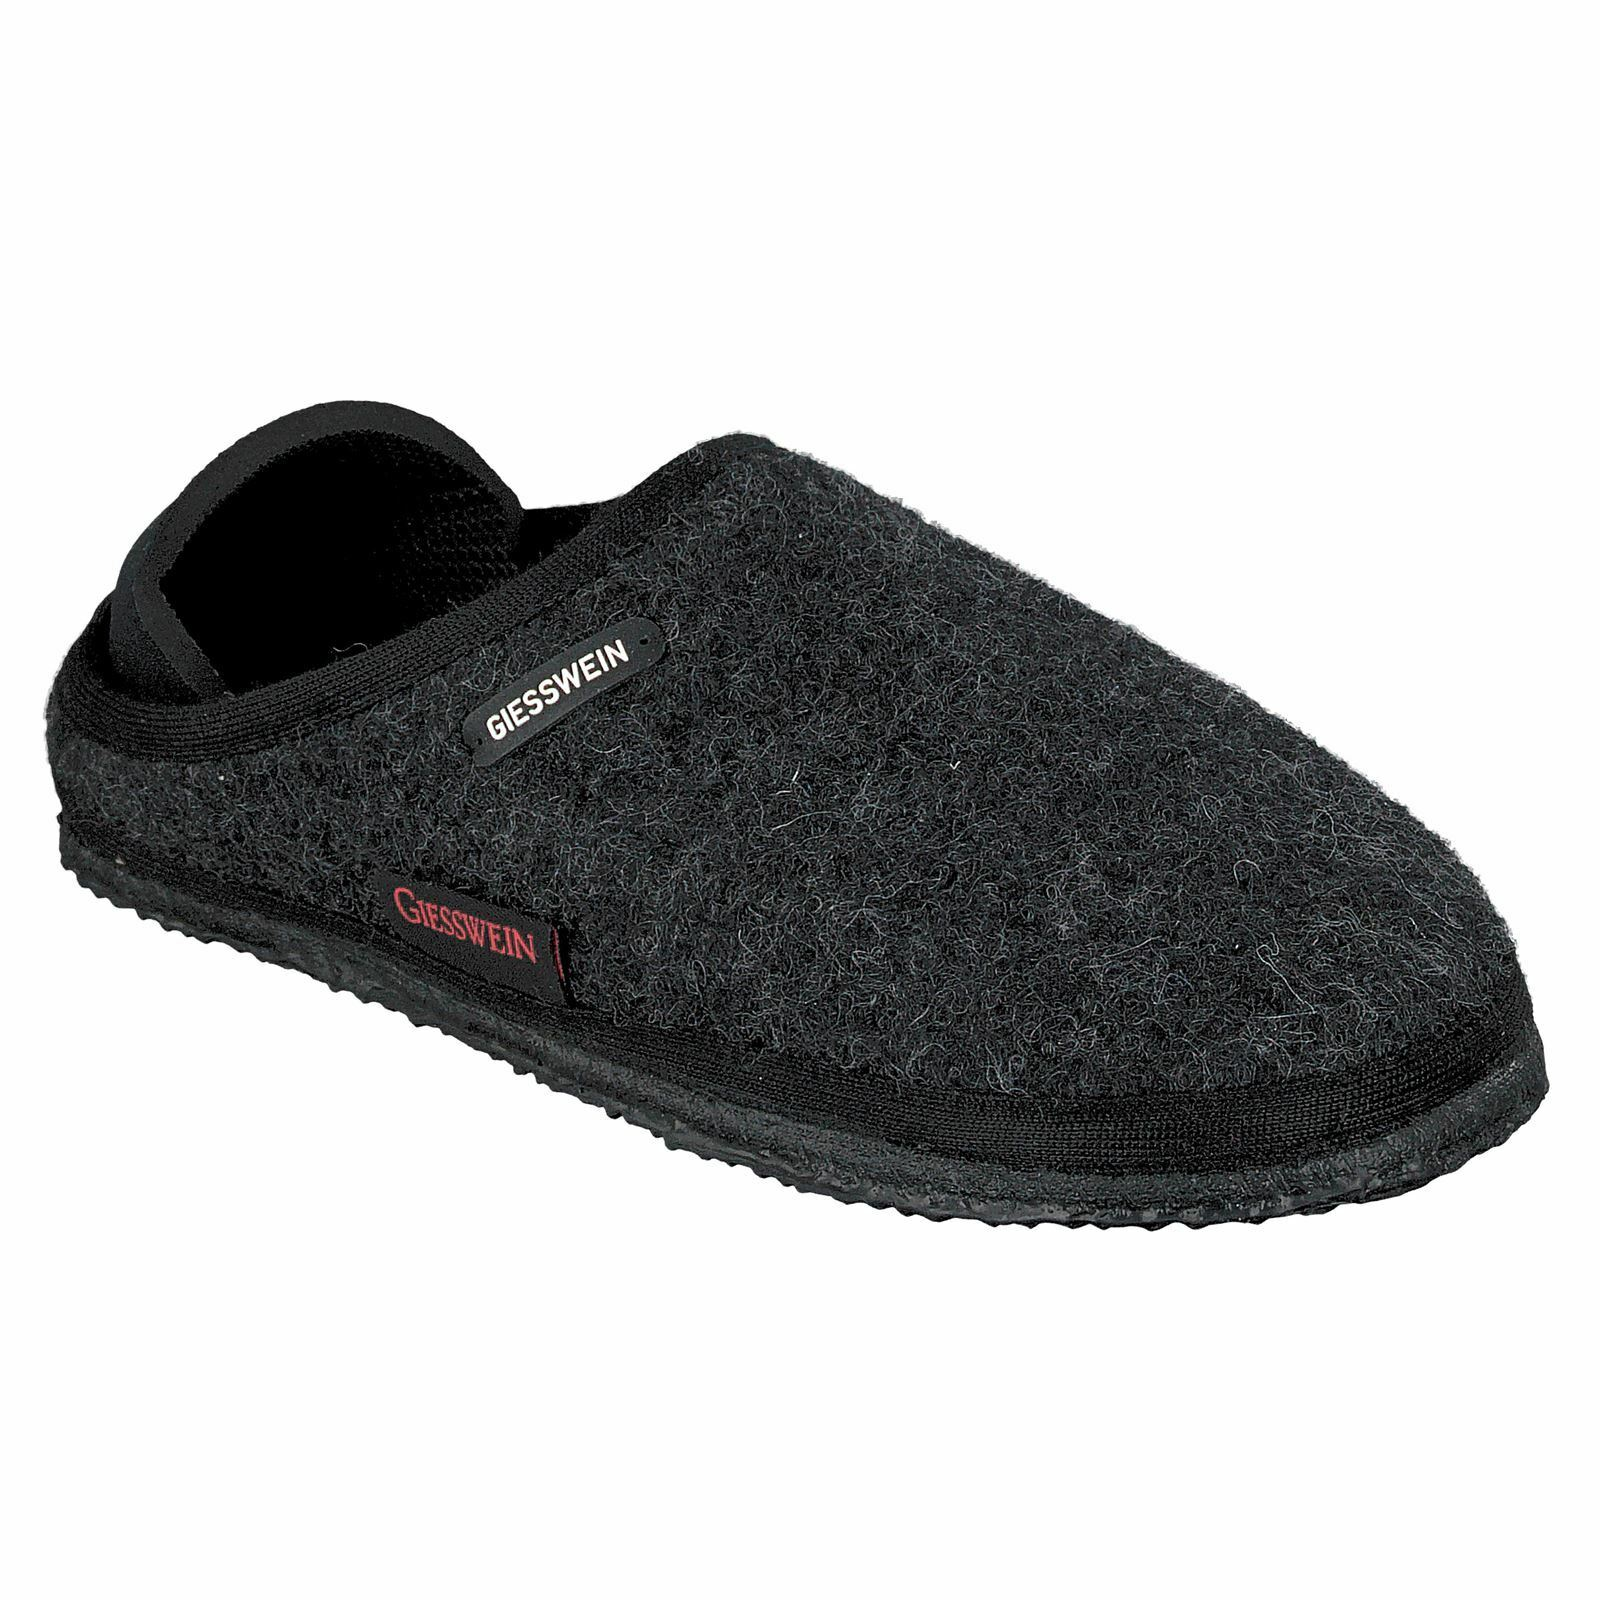 Giesswein Neritz Anthracite Damenschuhe Wool Closed Back Schuhes Slippers Mule